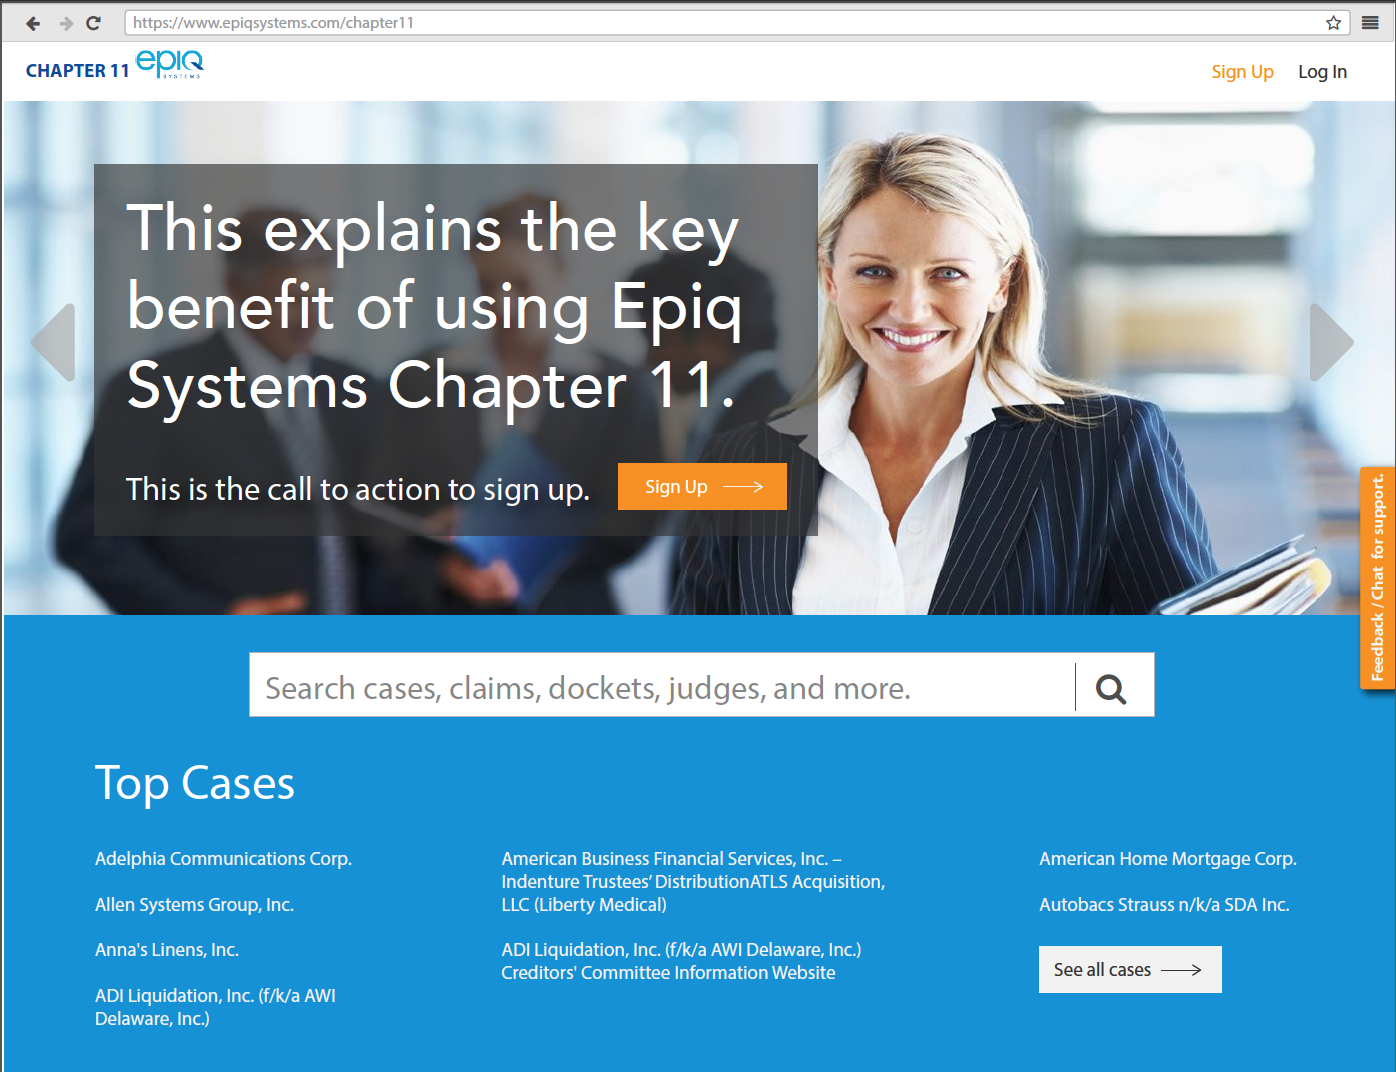 chapter 11 landing page   Search corporate restructuring cases and stay up-to-date with claims, dockets, and other information.